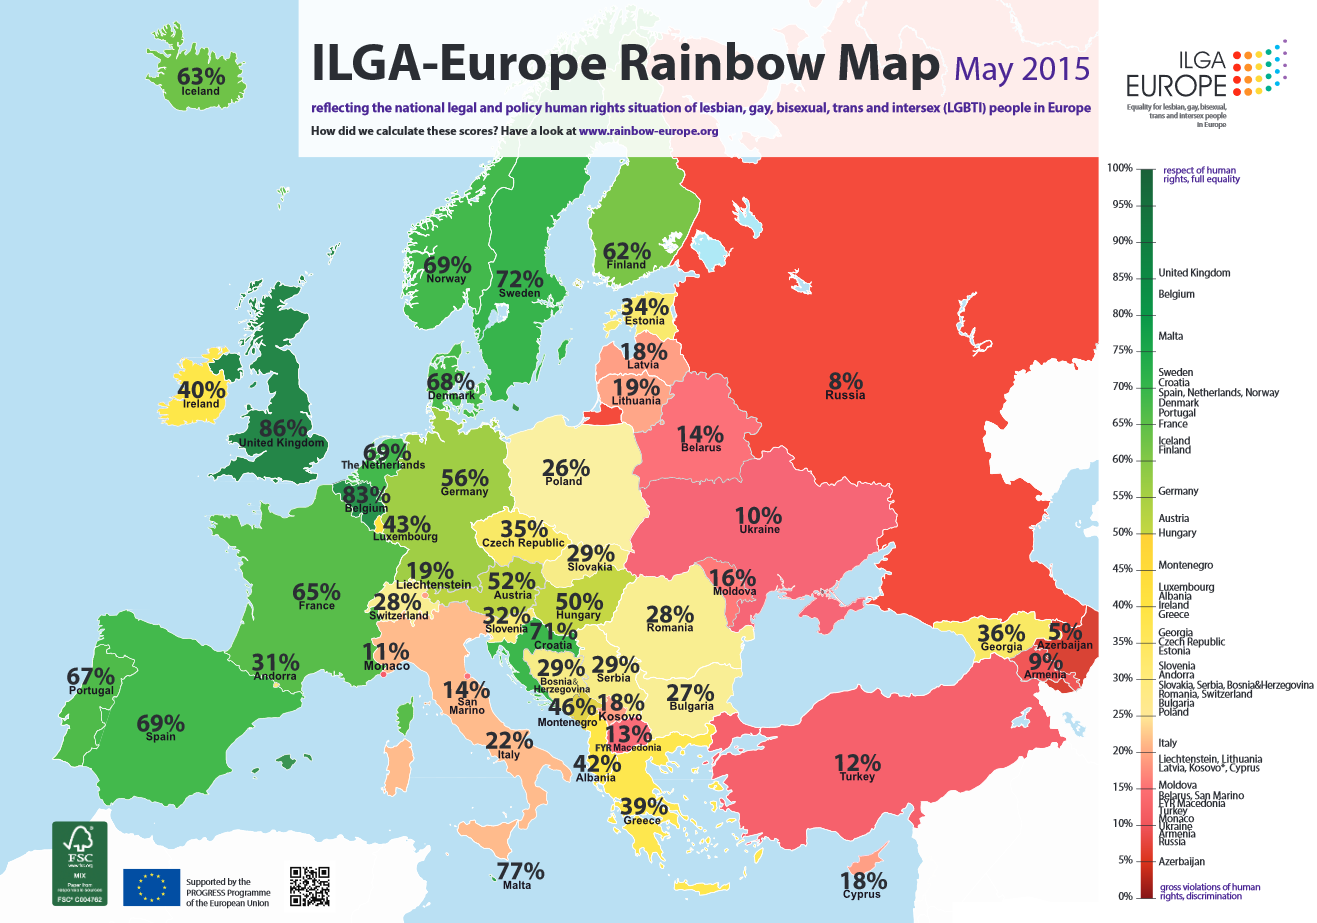 Side_A_Rainbow_Europe_Map_2015_A3_-_side_a_rainbow_europe_map_2015_a3_no_crops.pdf_-_2015-12-17_11.02.29